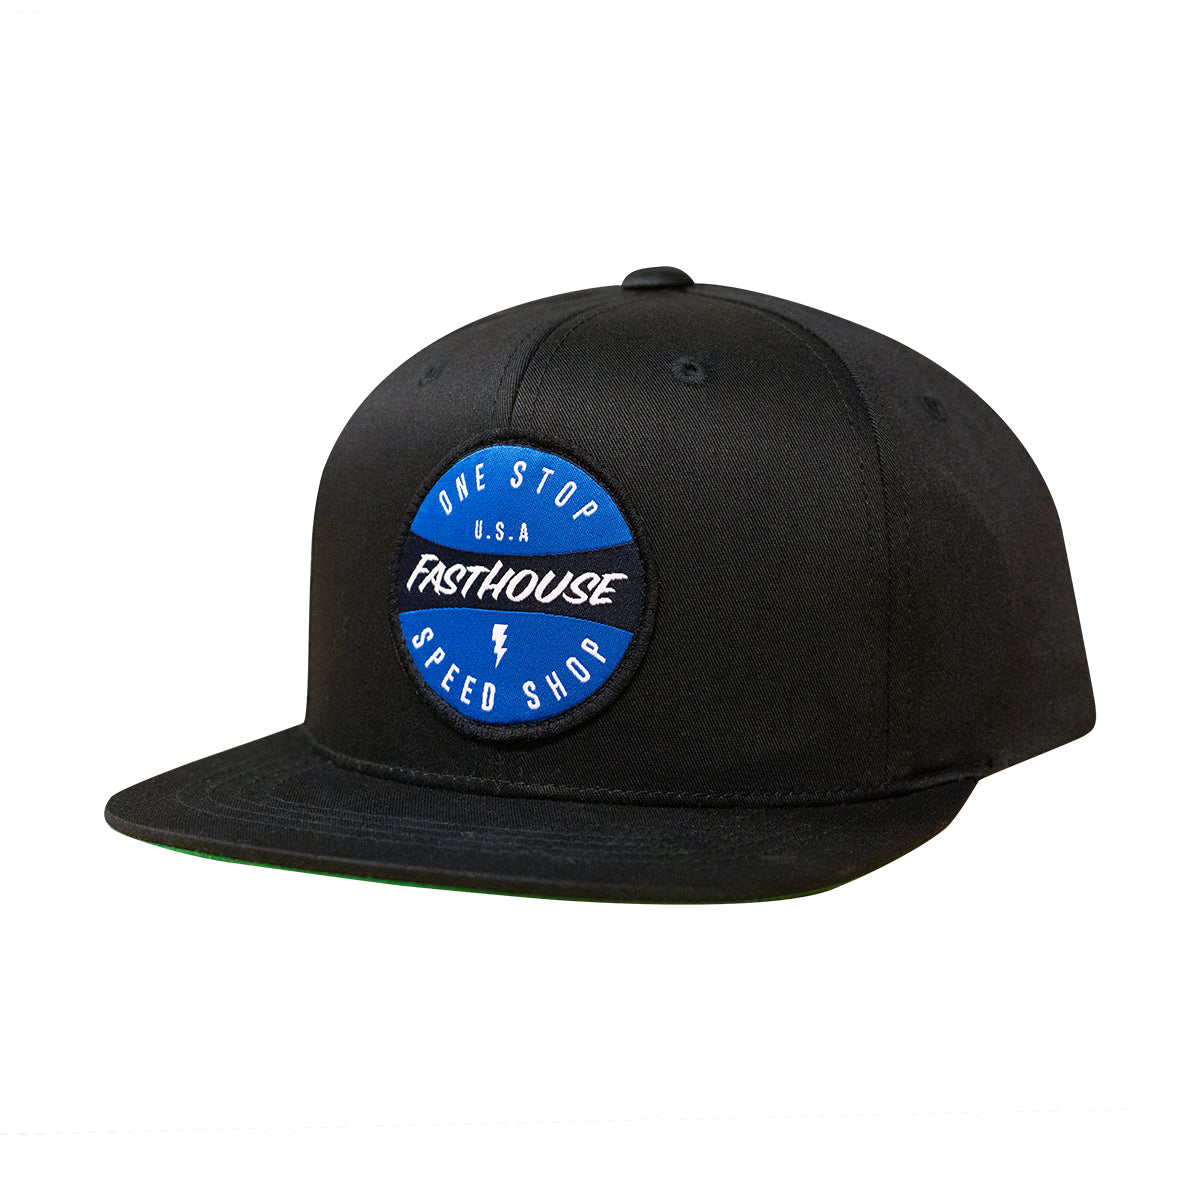 Fasthouse - One Stop Youth Hat - Black